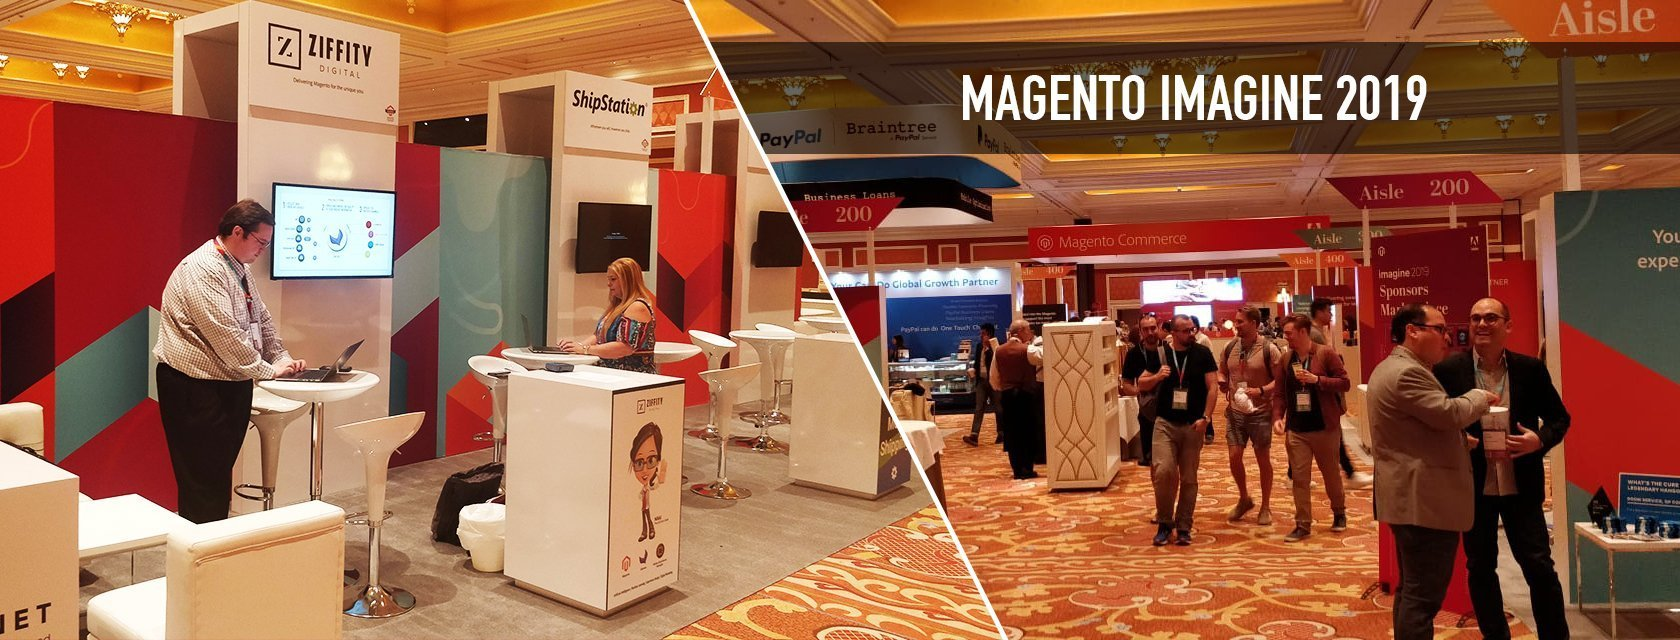 Magento Imagine 2019 Recap